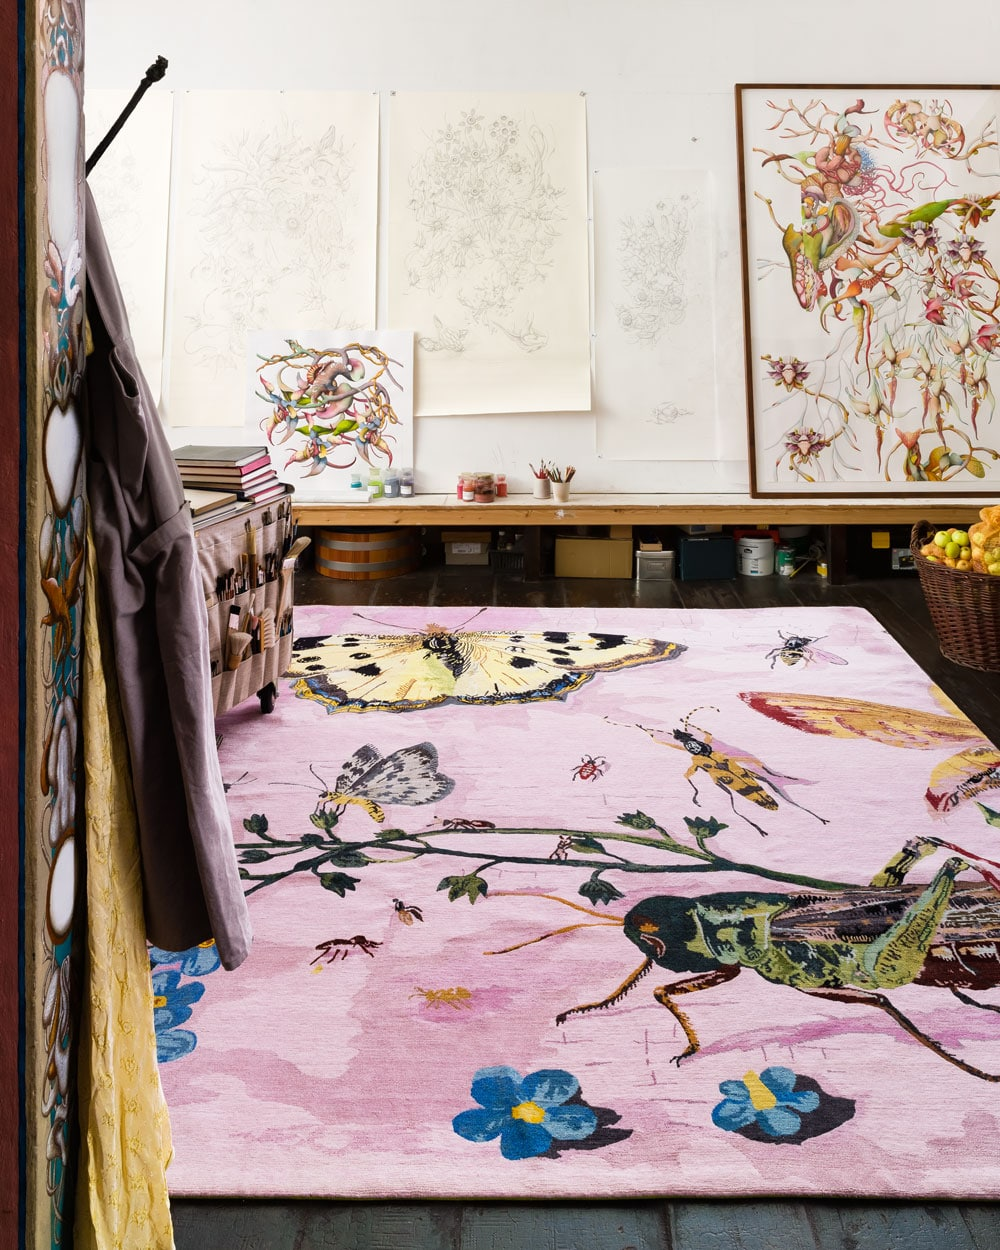 Four rooms defined by rugs